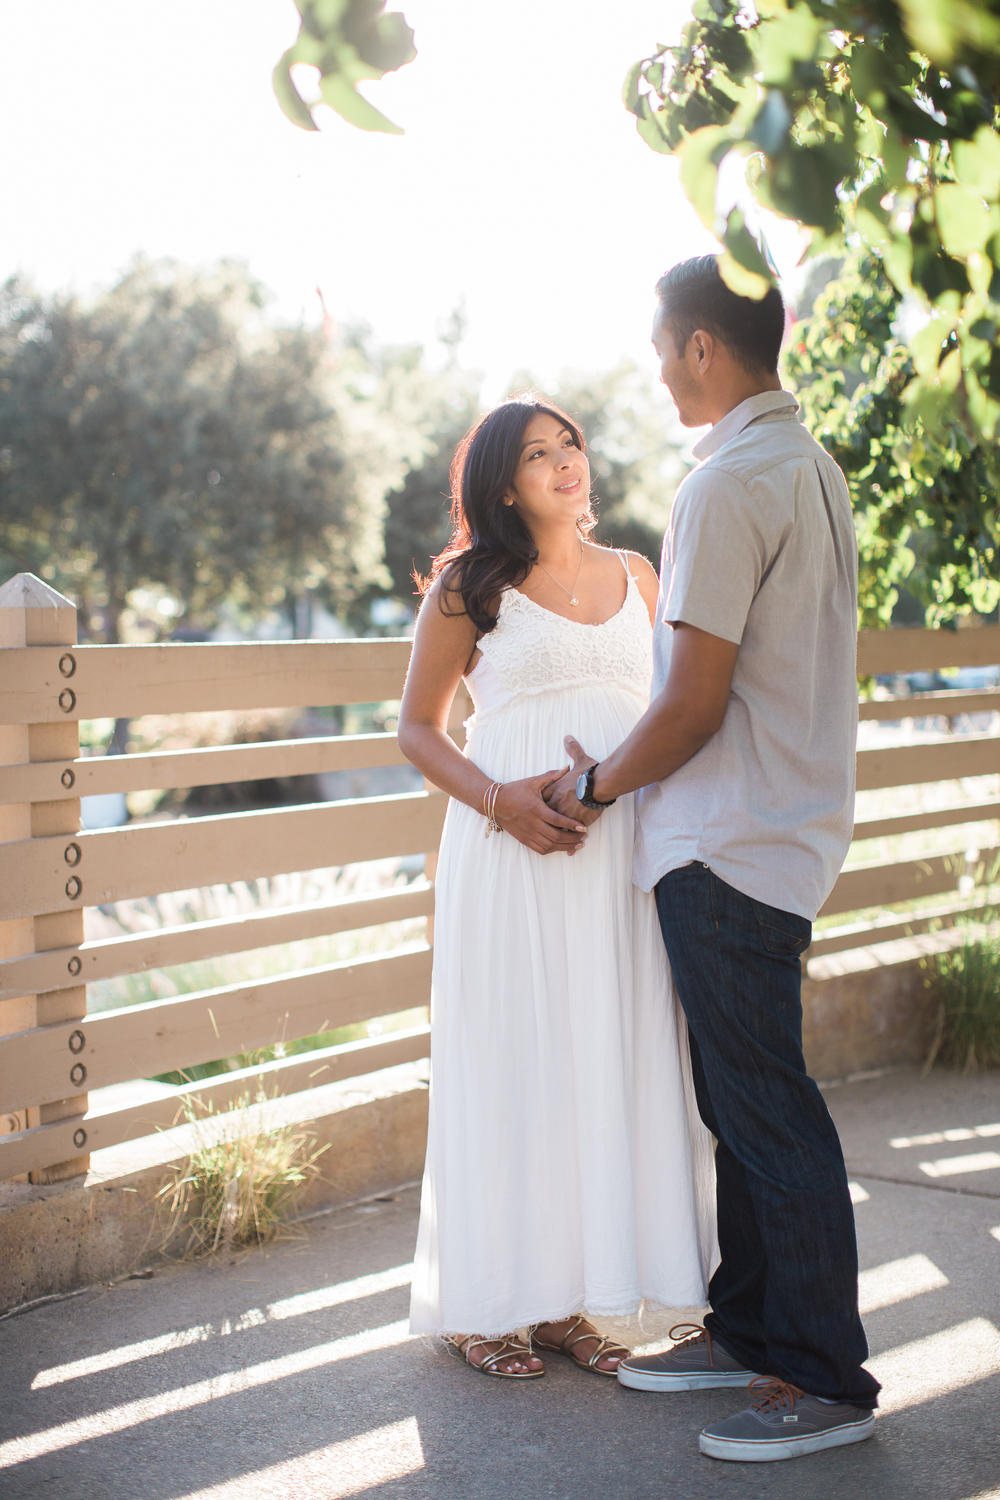 Marcella_Maternity_Cerritos_BrandonJFerlin_Photography-32.jpg